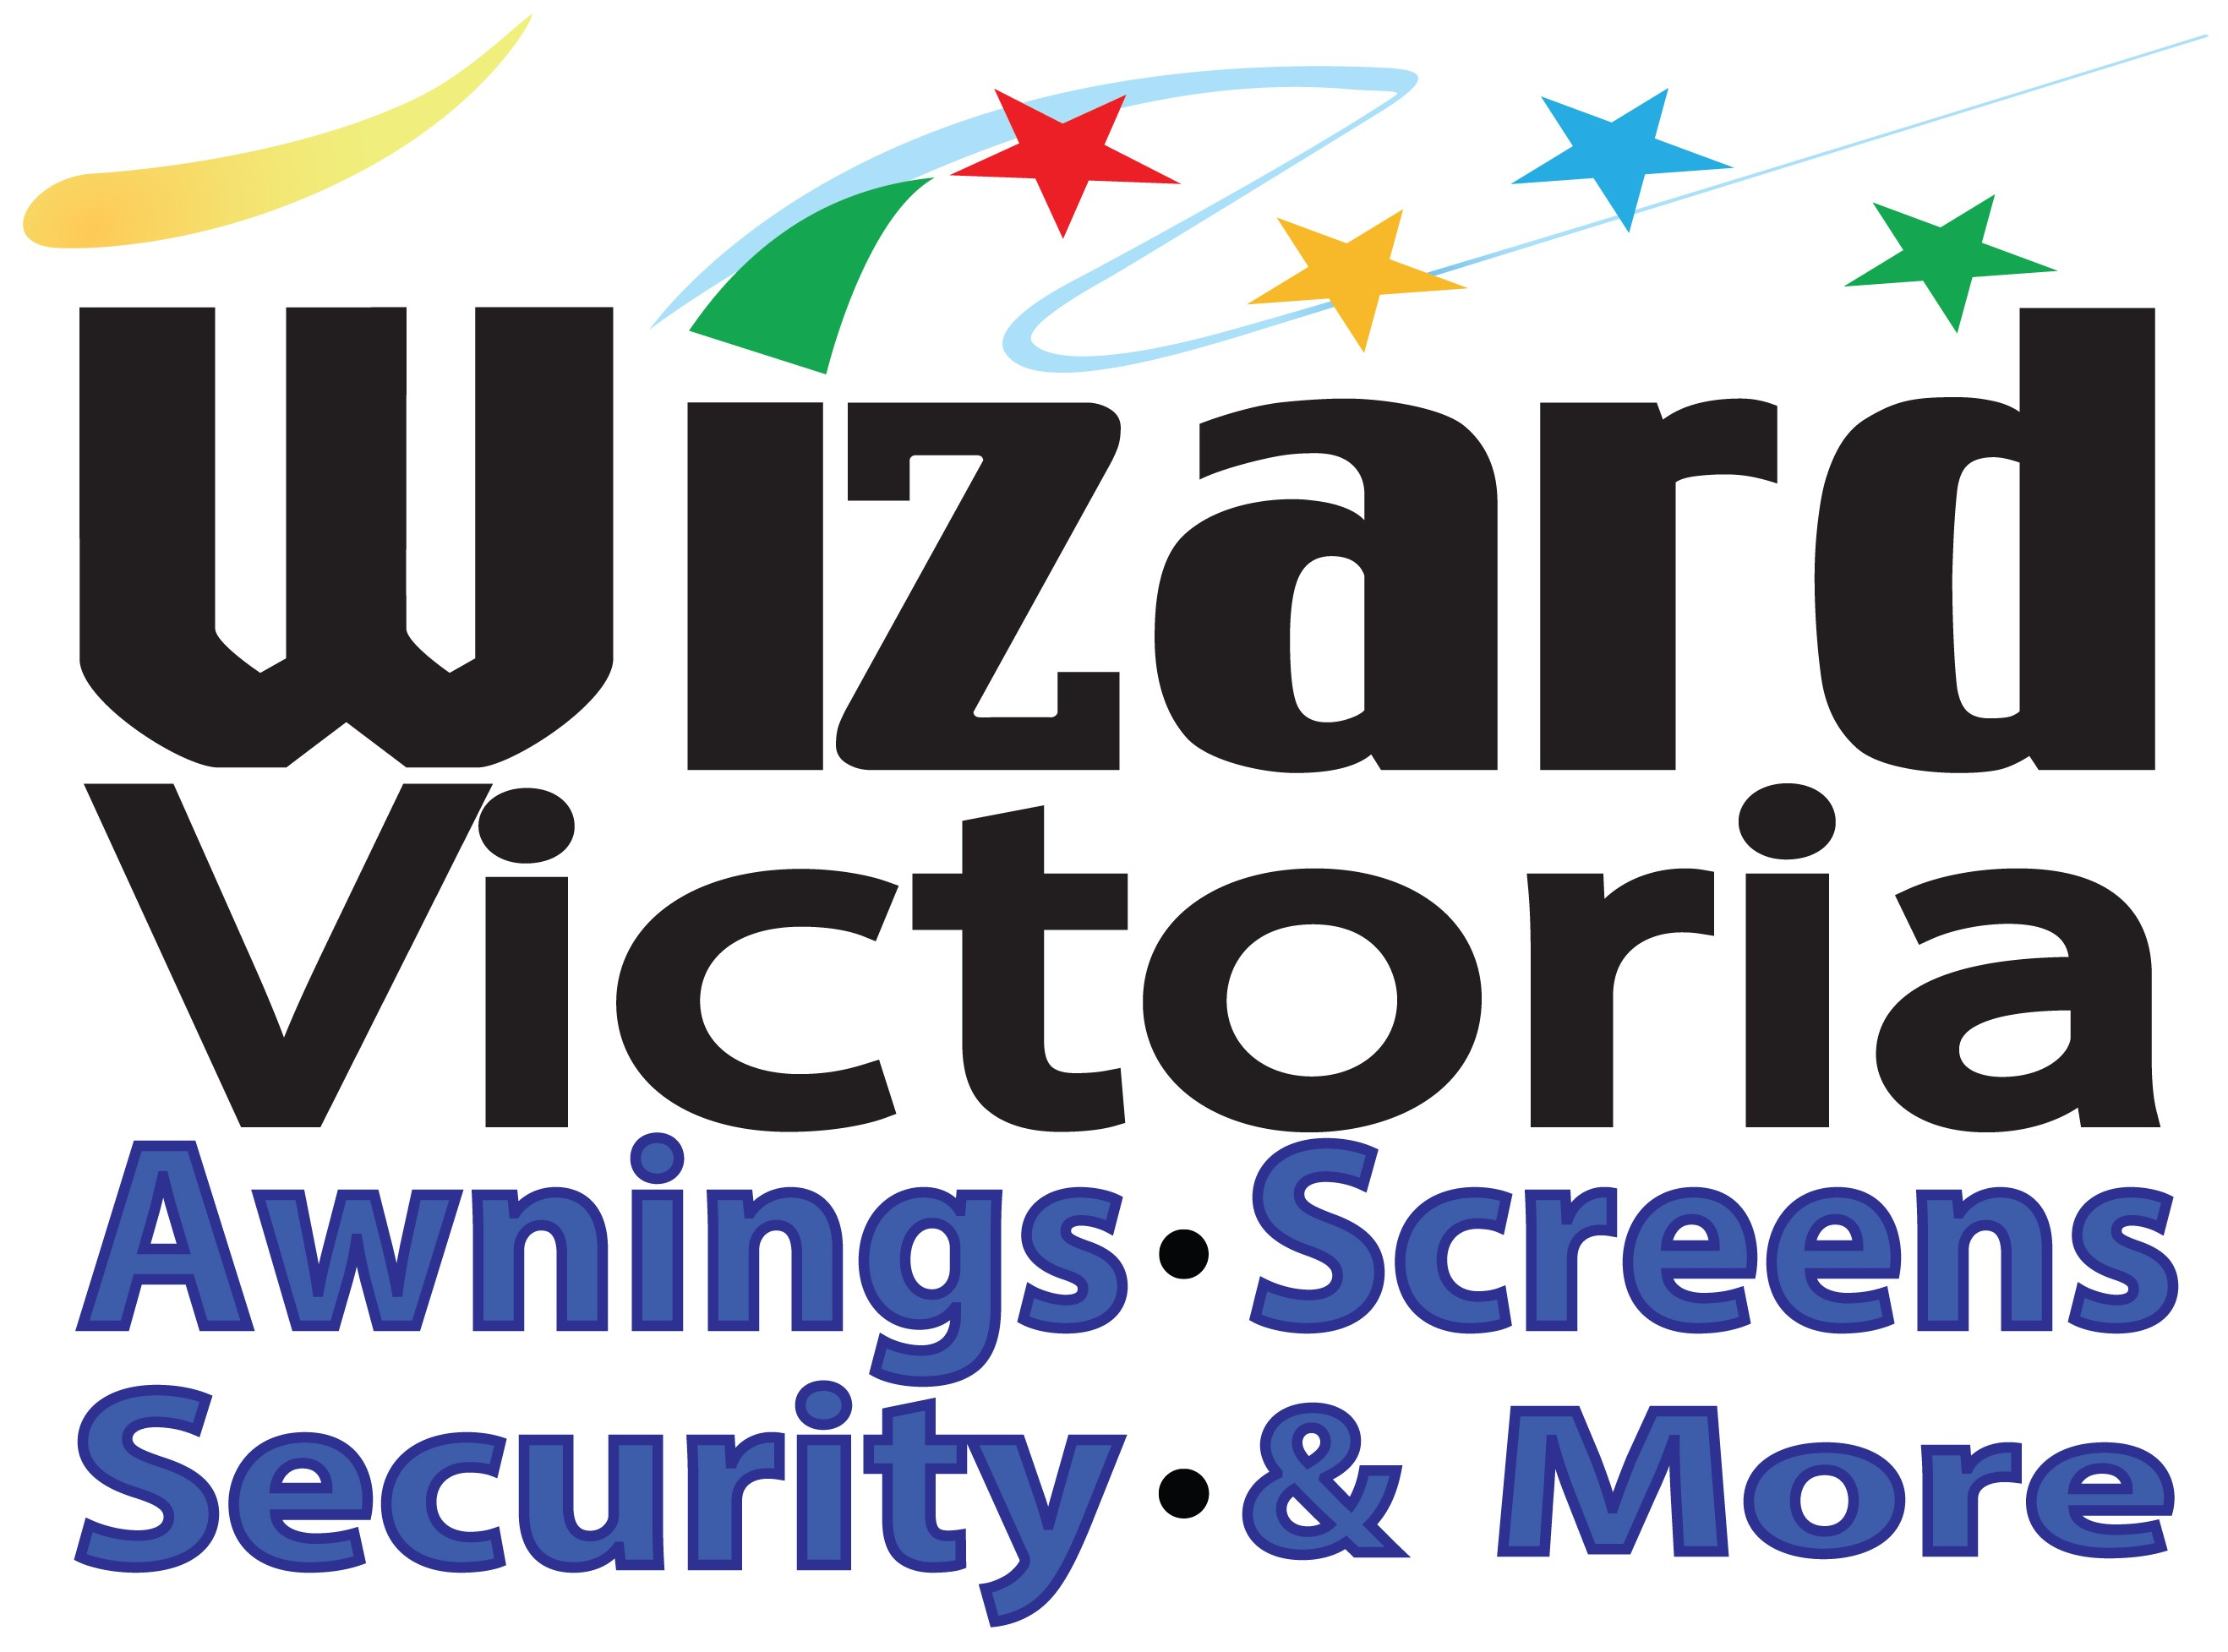 Wizard Screens & More Victoria